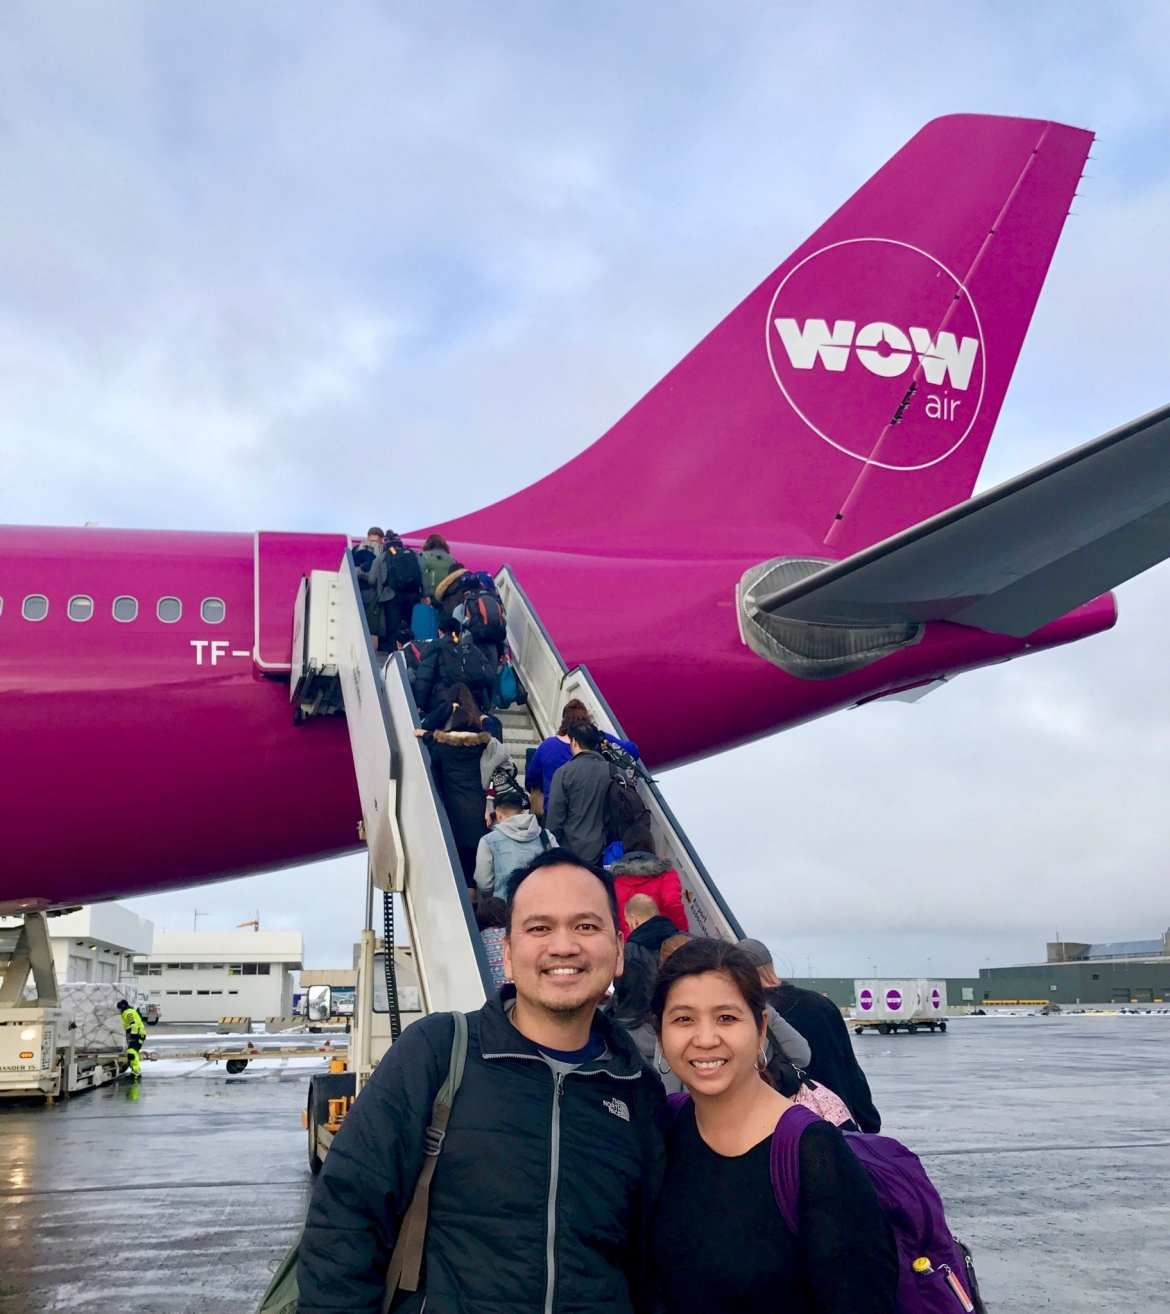 The Road to Iceland and flying WOW Air